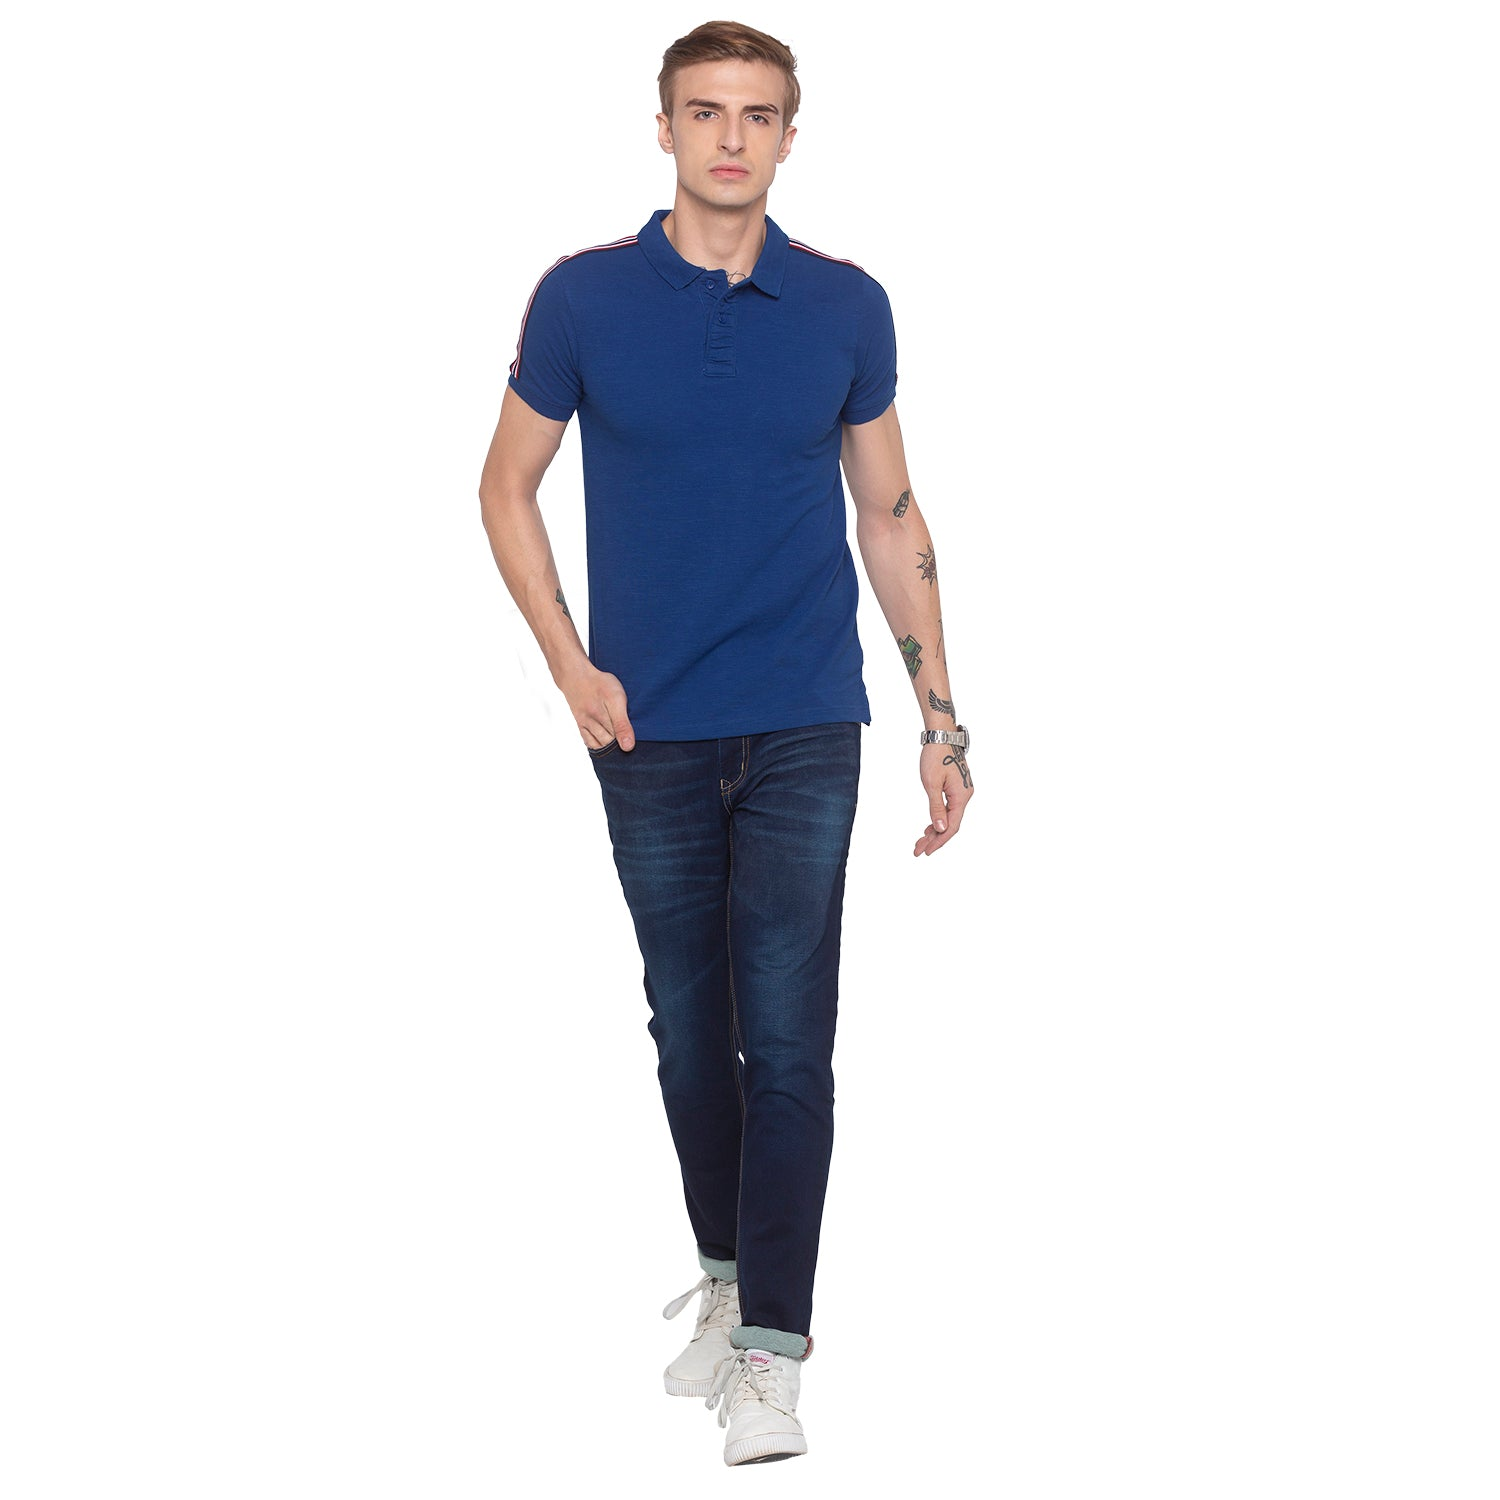 Electric Blue Polo T-shirt-4